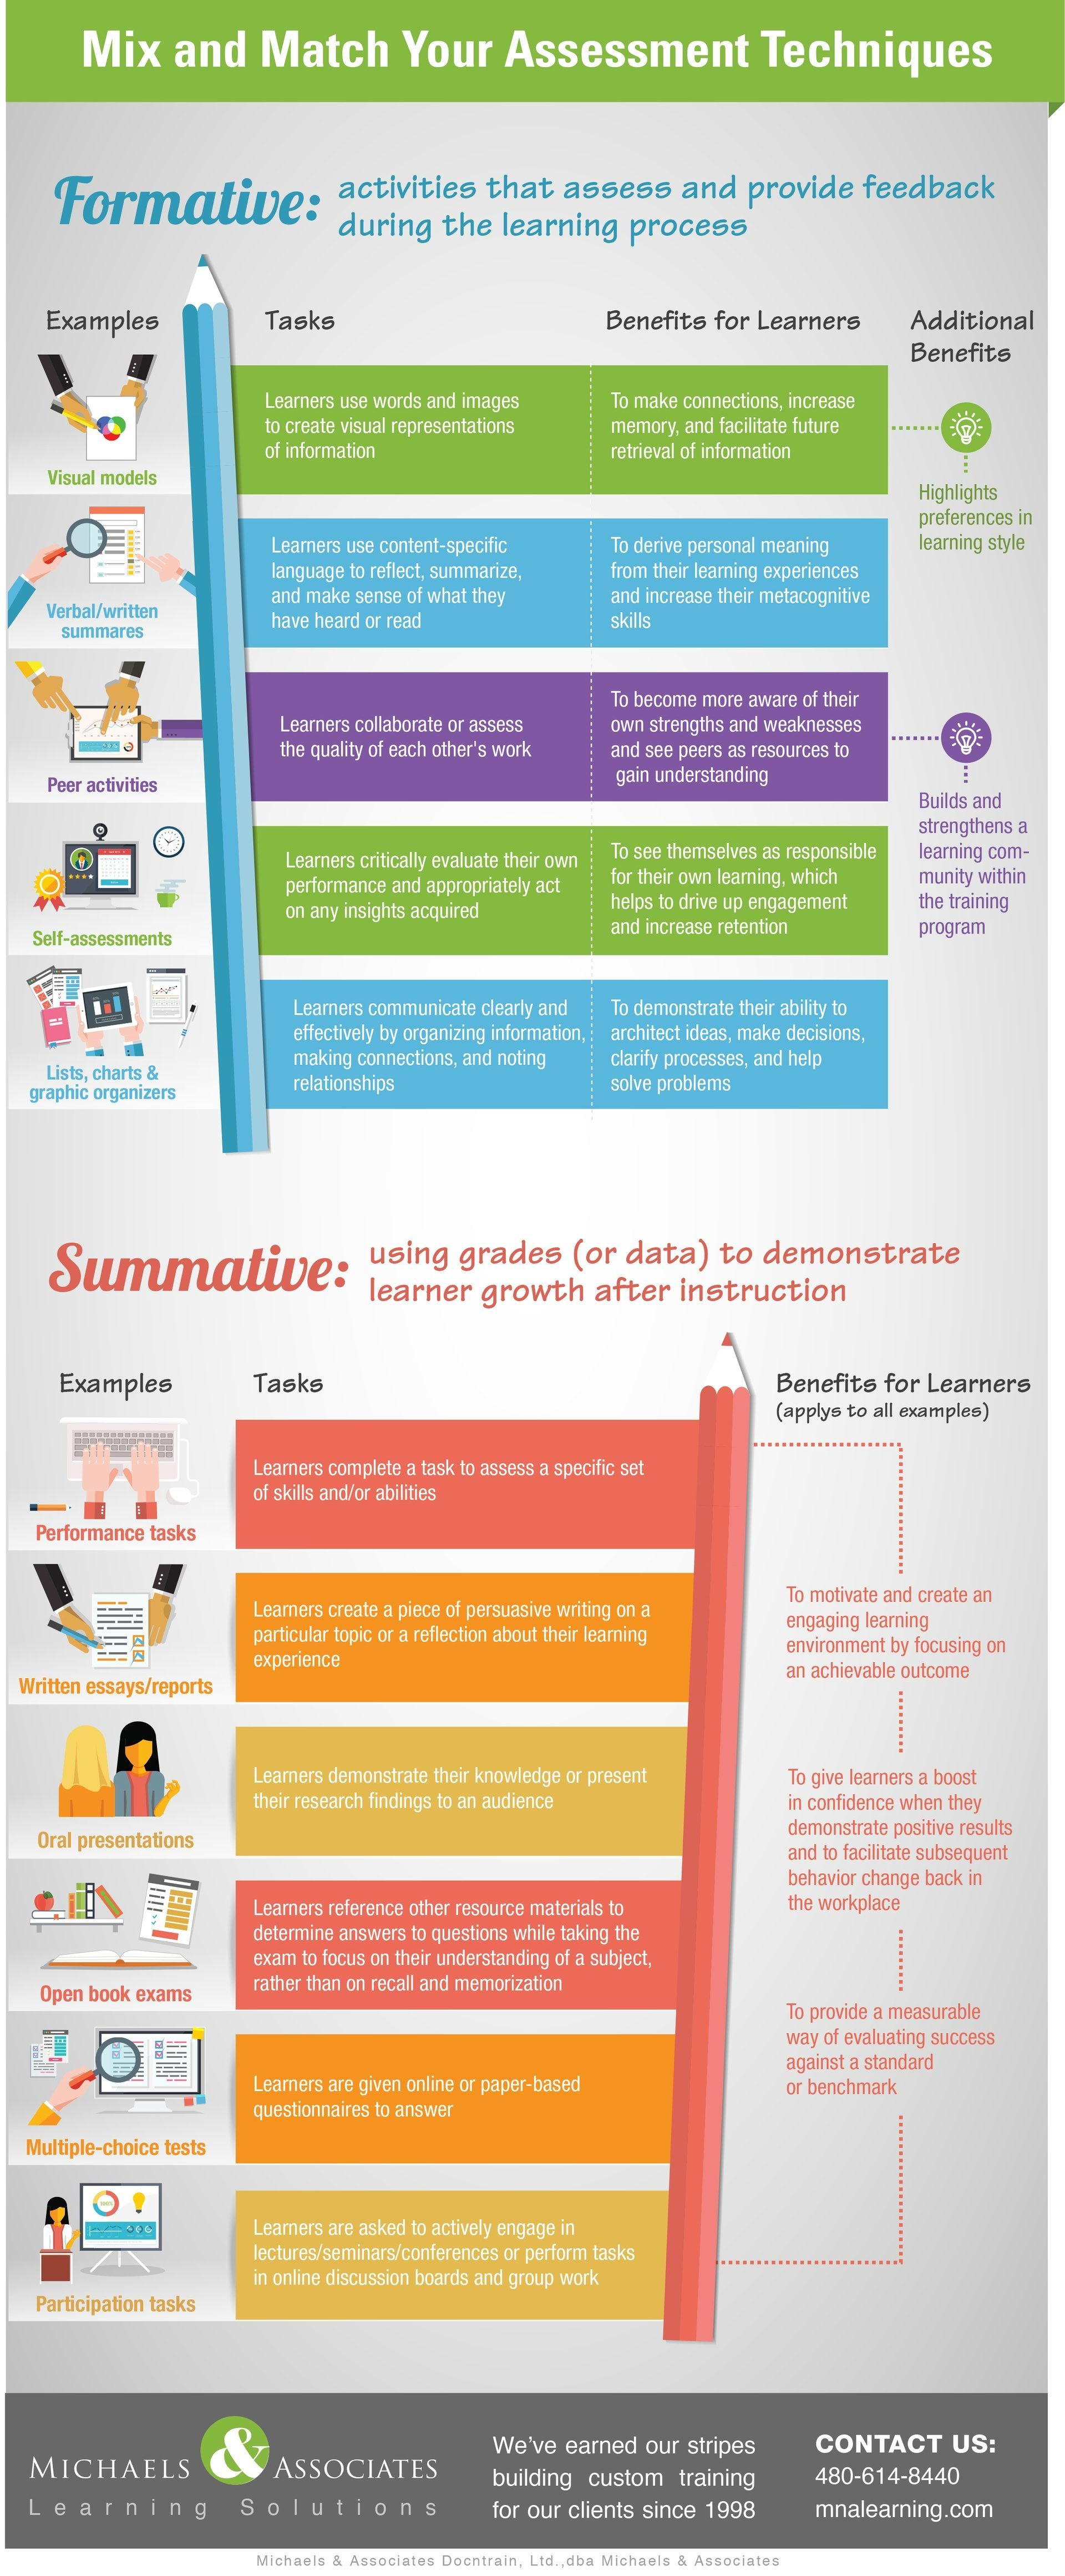 Mix and Match Your Assessment Techniques to Boost Performance Infographic